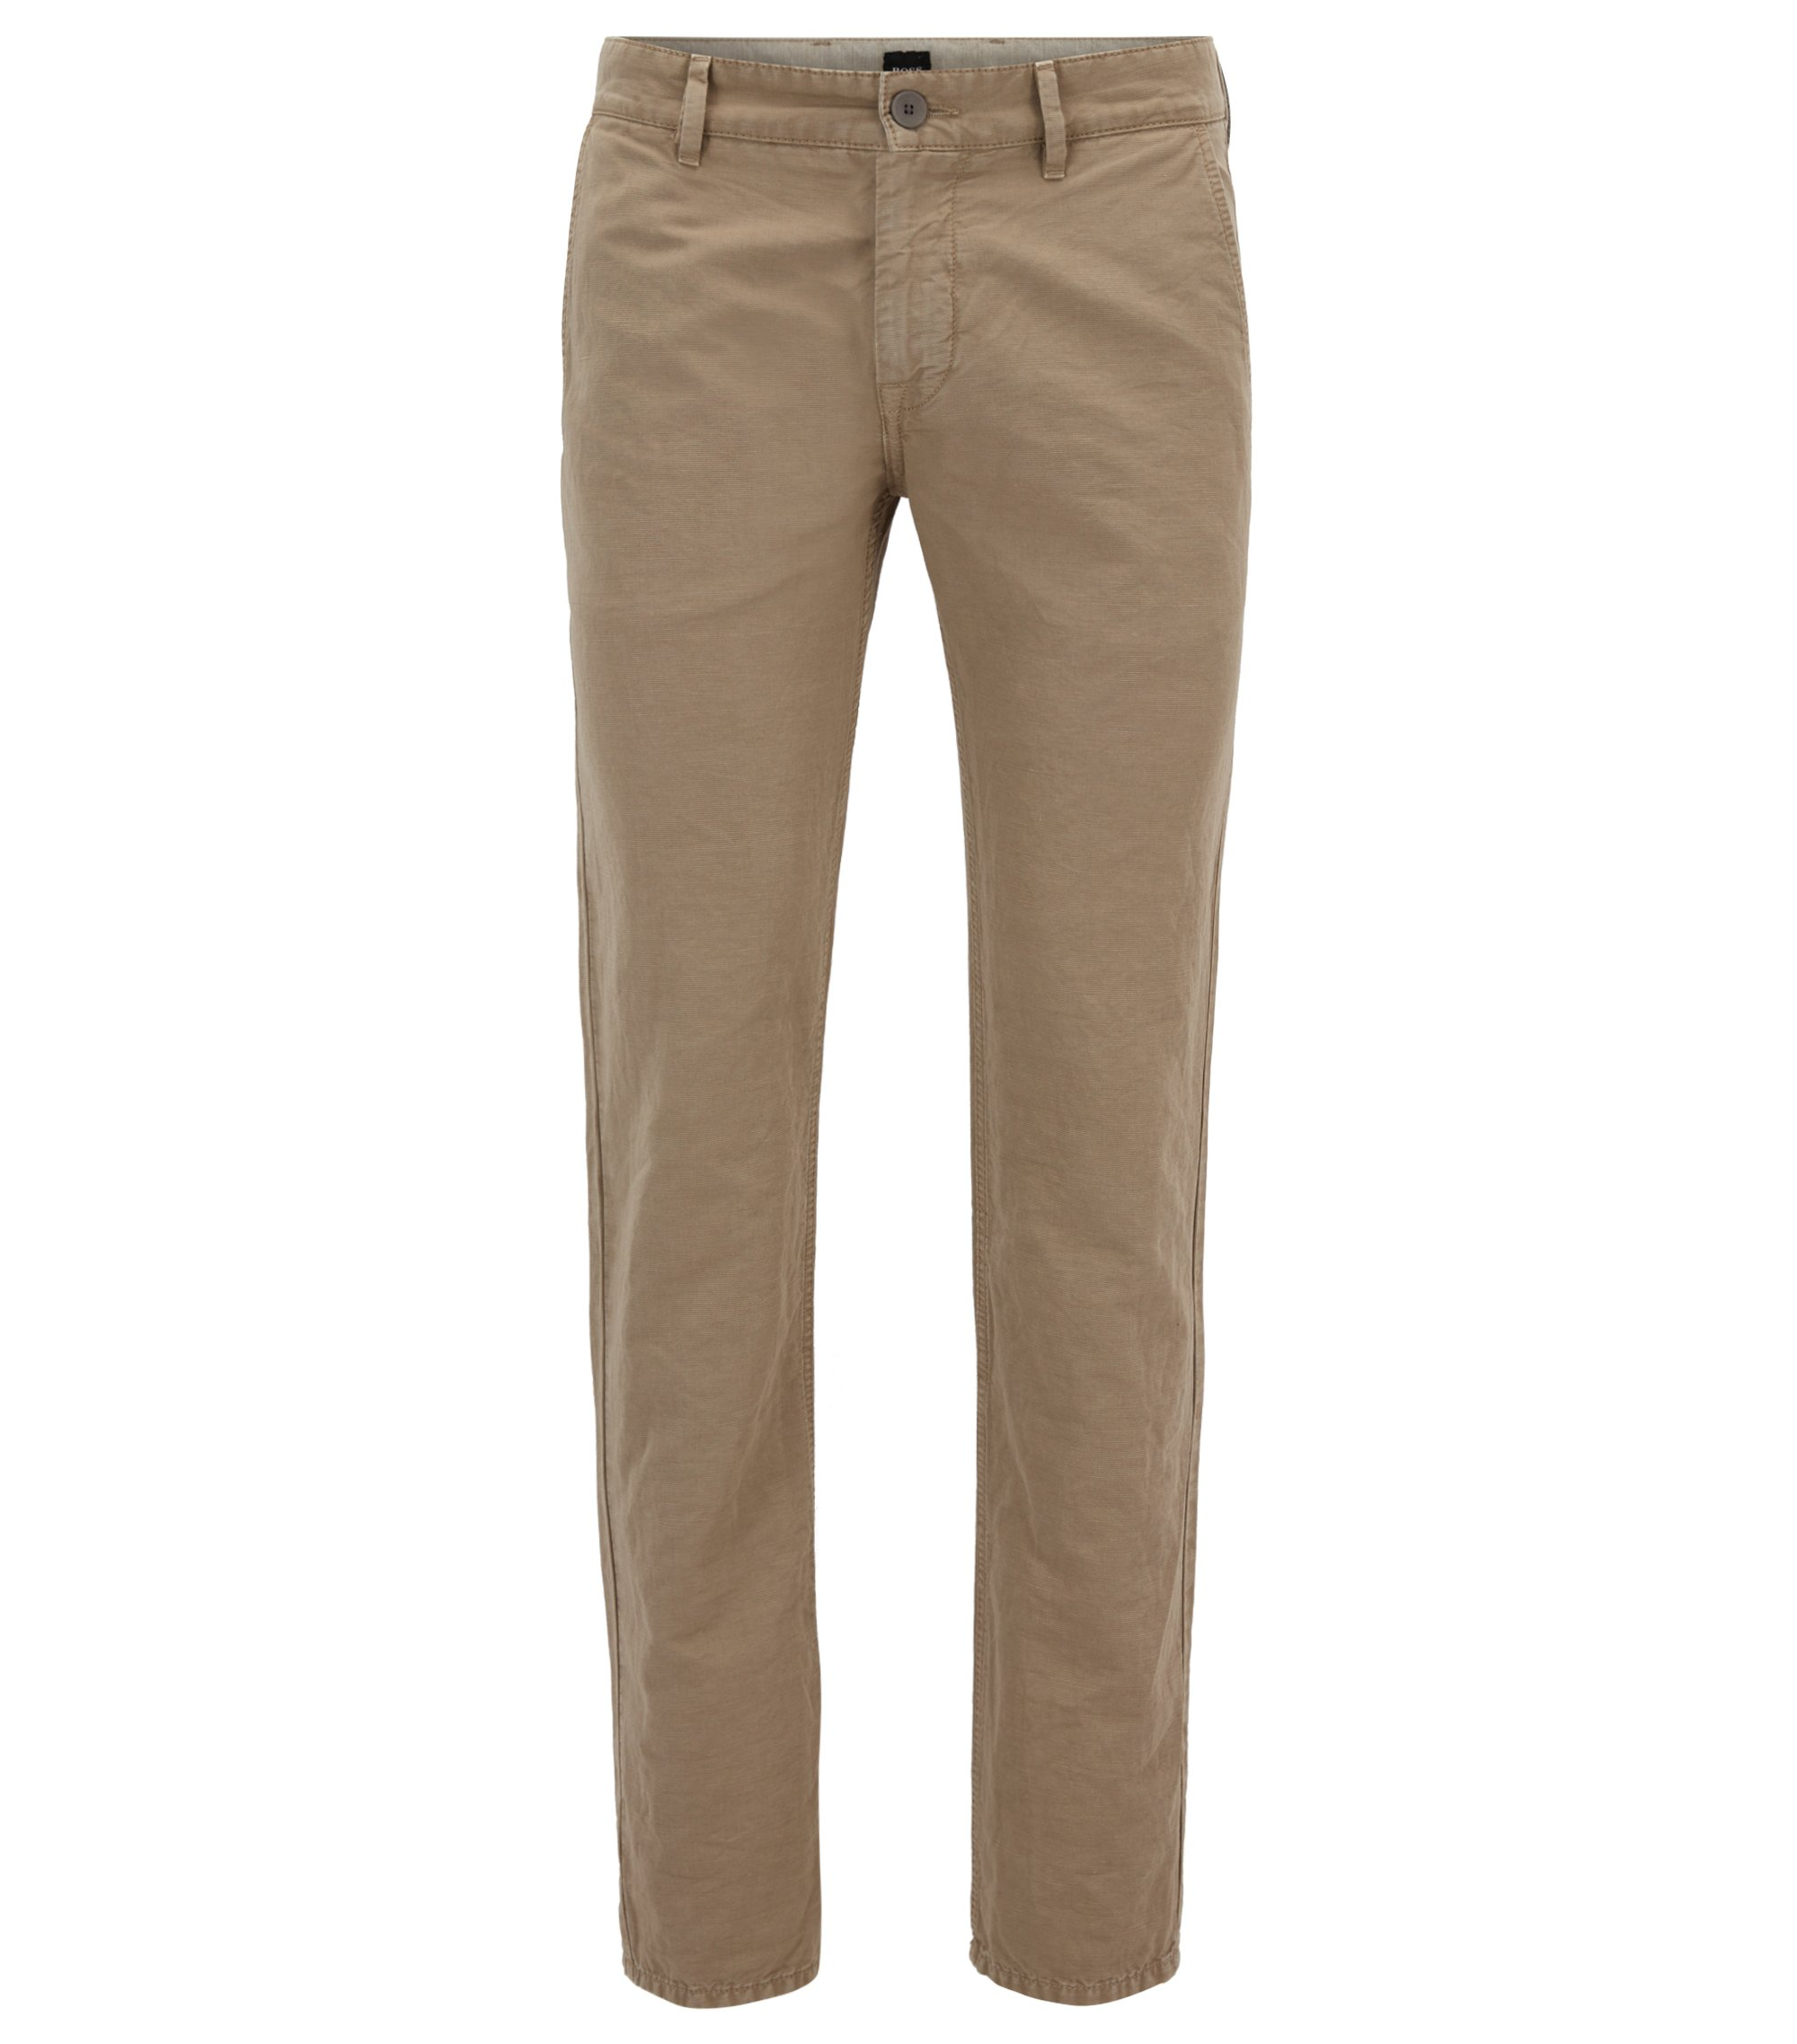 Pantaloni slim fit in misto cotone, Beige